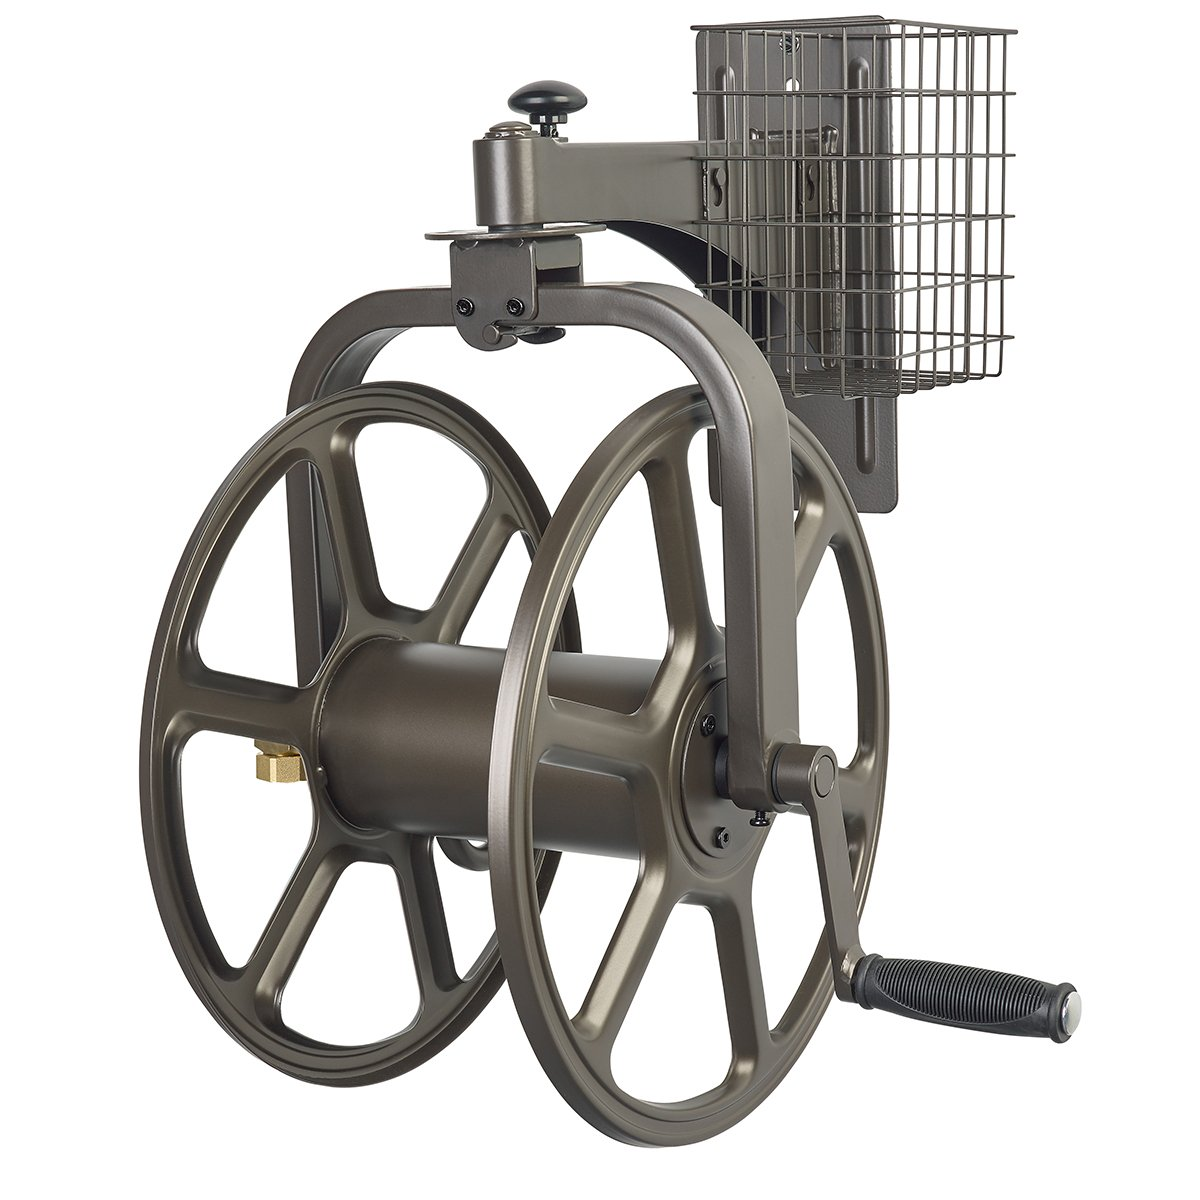 Liberty Garden Products 712 Single Arm Navigator Multi-Directional Garden Hose Reel, Holds 125-Feet of 5/8-Inch Hose - Bronze by Liberty Garden Products